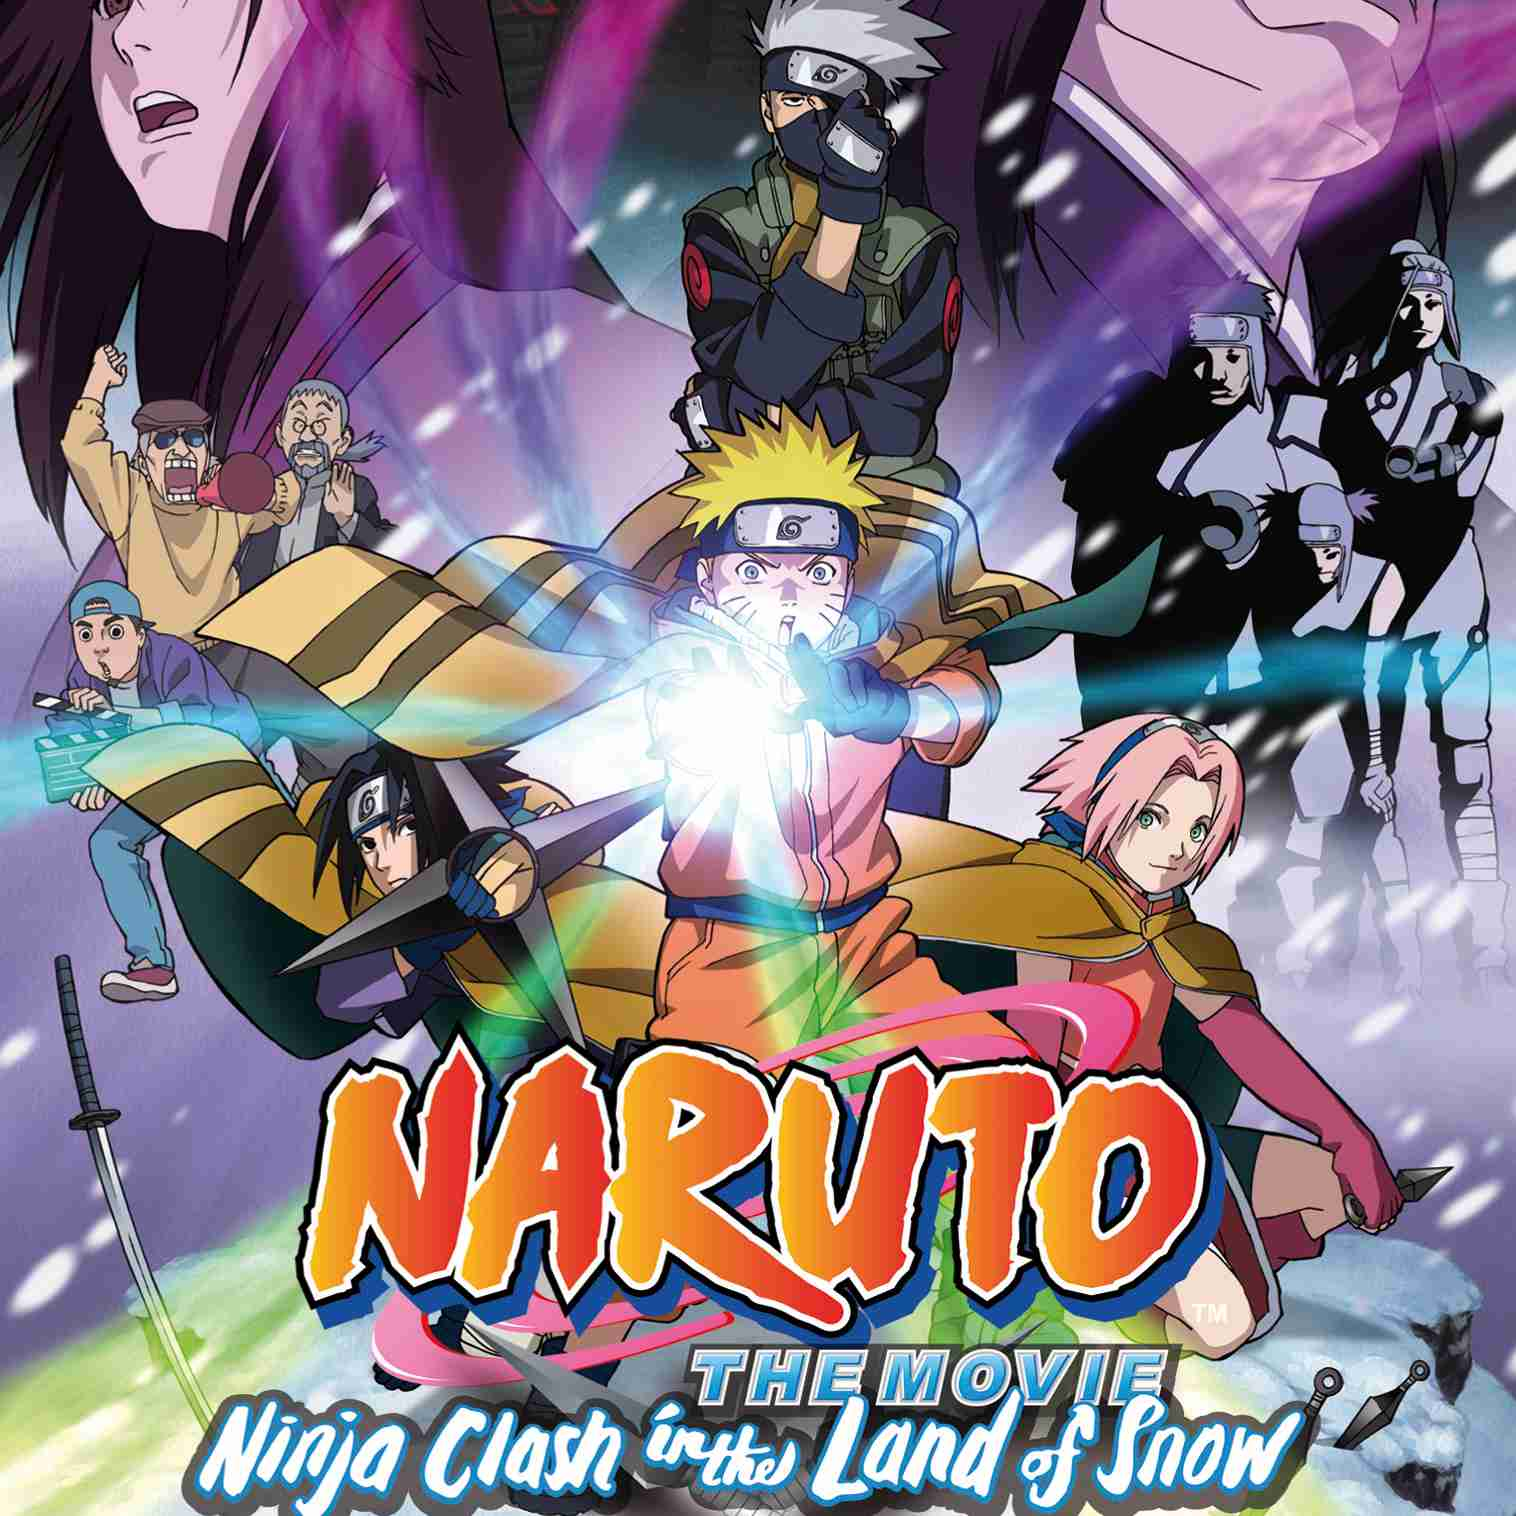 Find All The Naruto DVDs Here